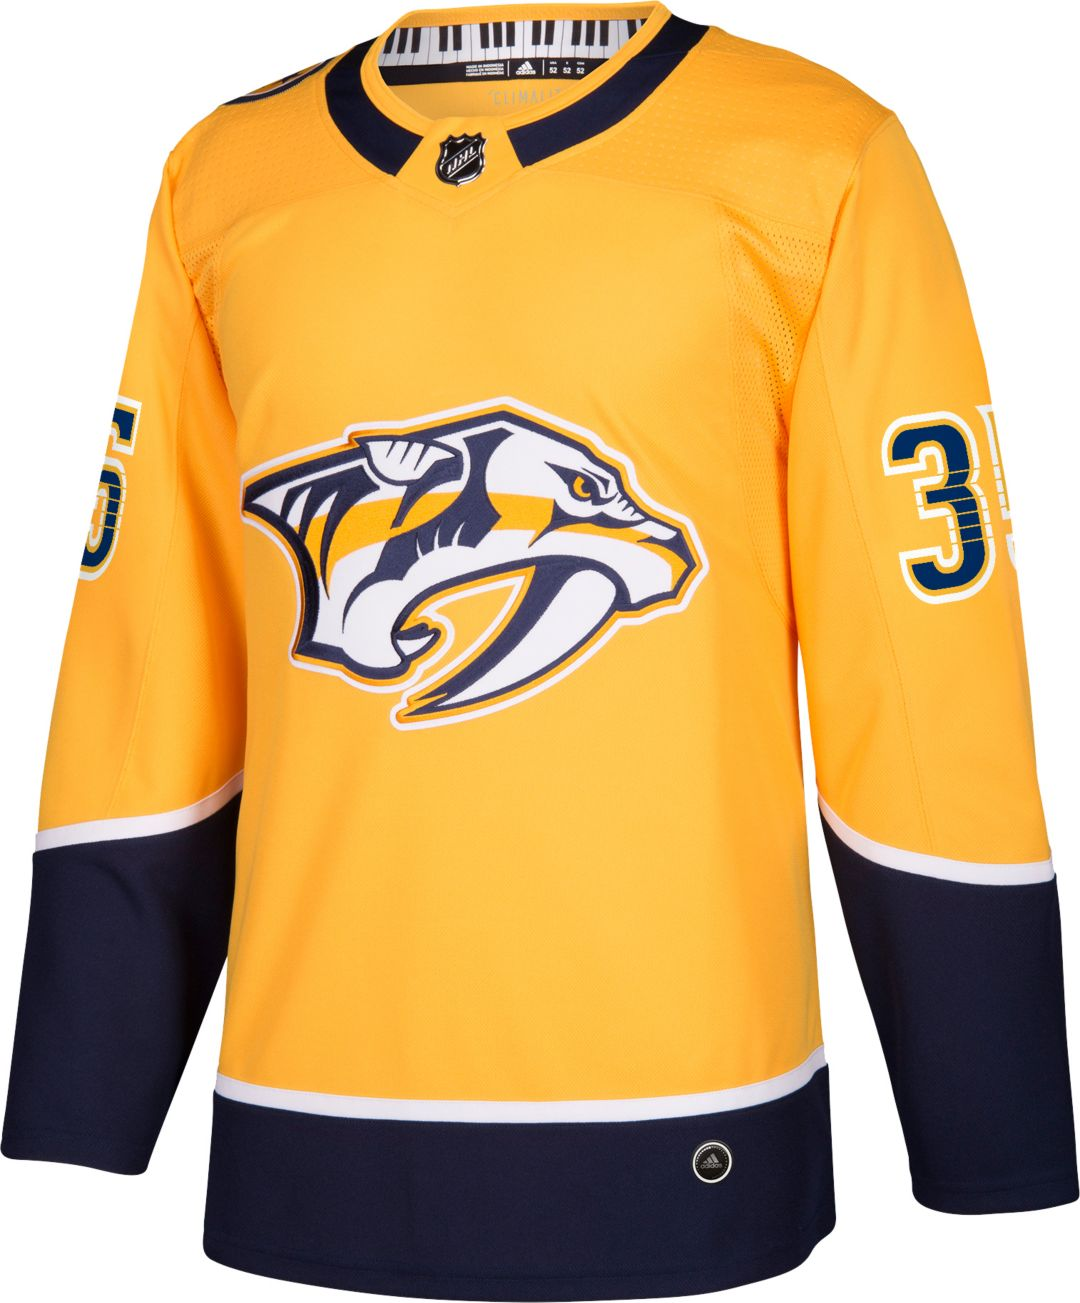 low priced c2f3b 5c2ad adidas Men's Nashville Predators Pekka Rinne #35 Authentic Pro Home Jersey